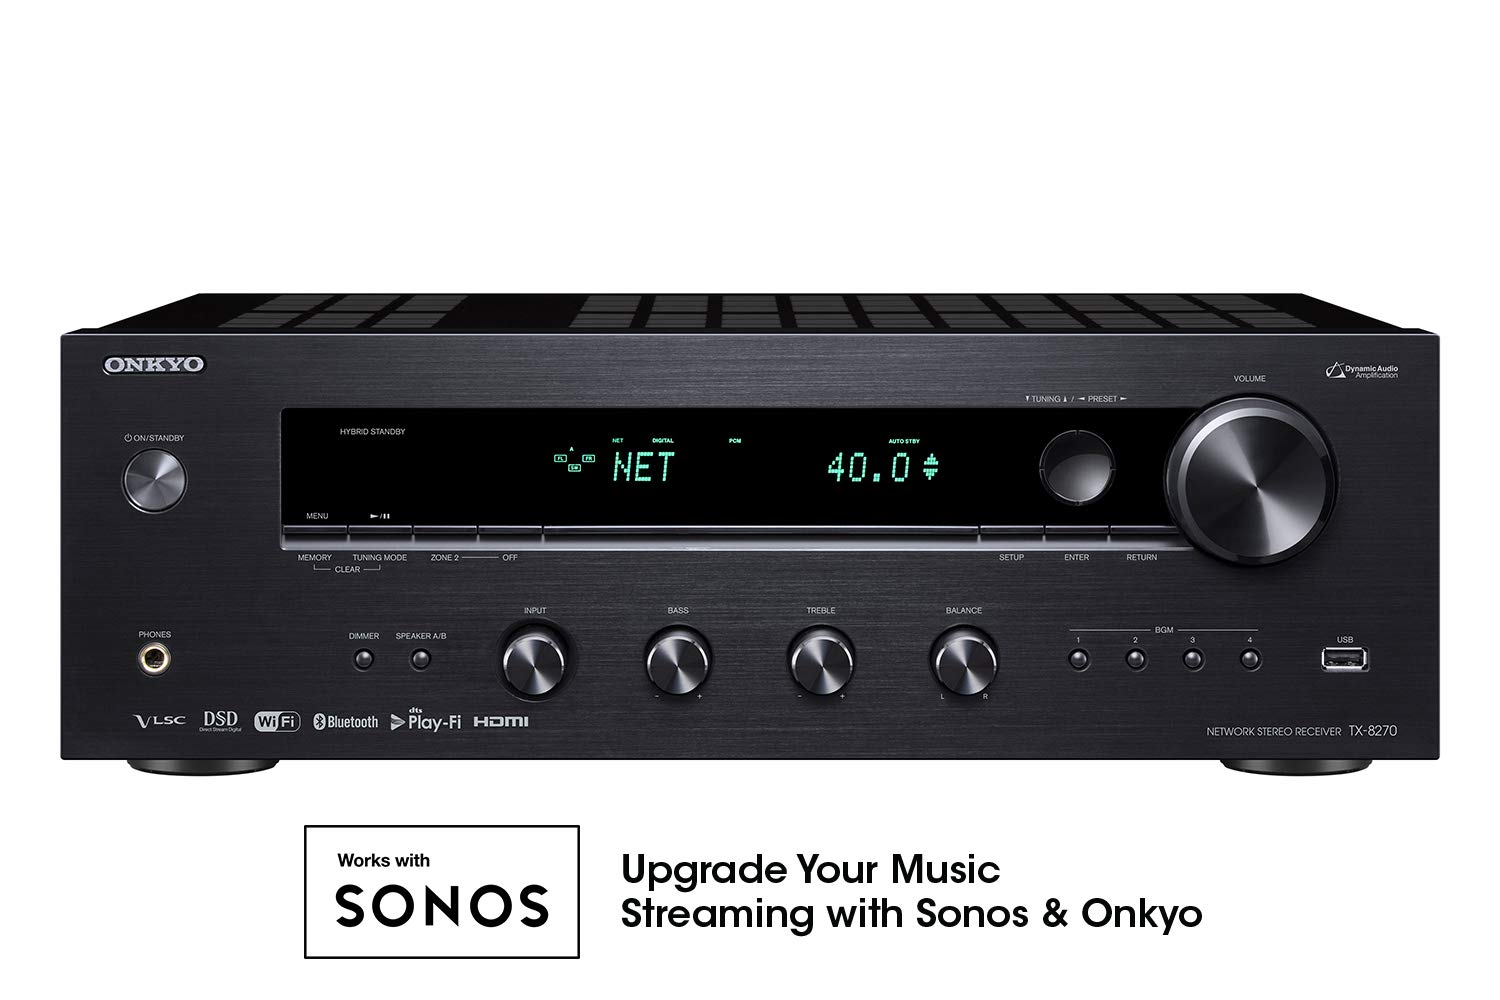 Onkyo TX-8270 2 Channel Network Stereo Receiver with 4k HDMI